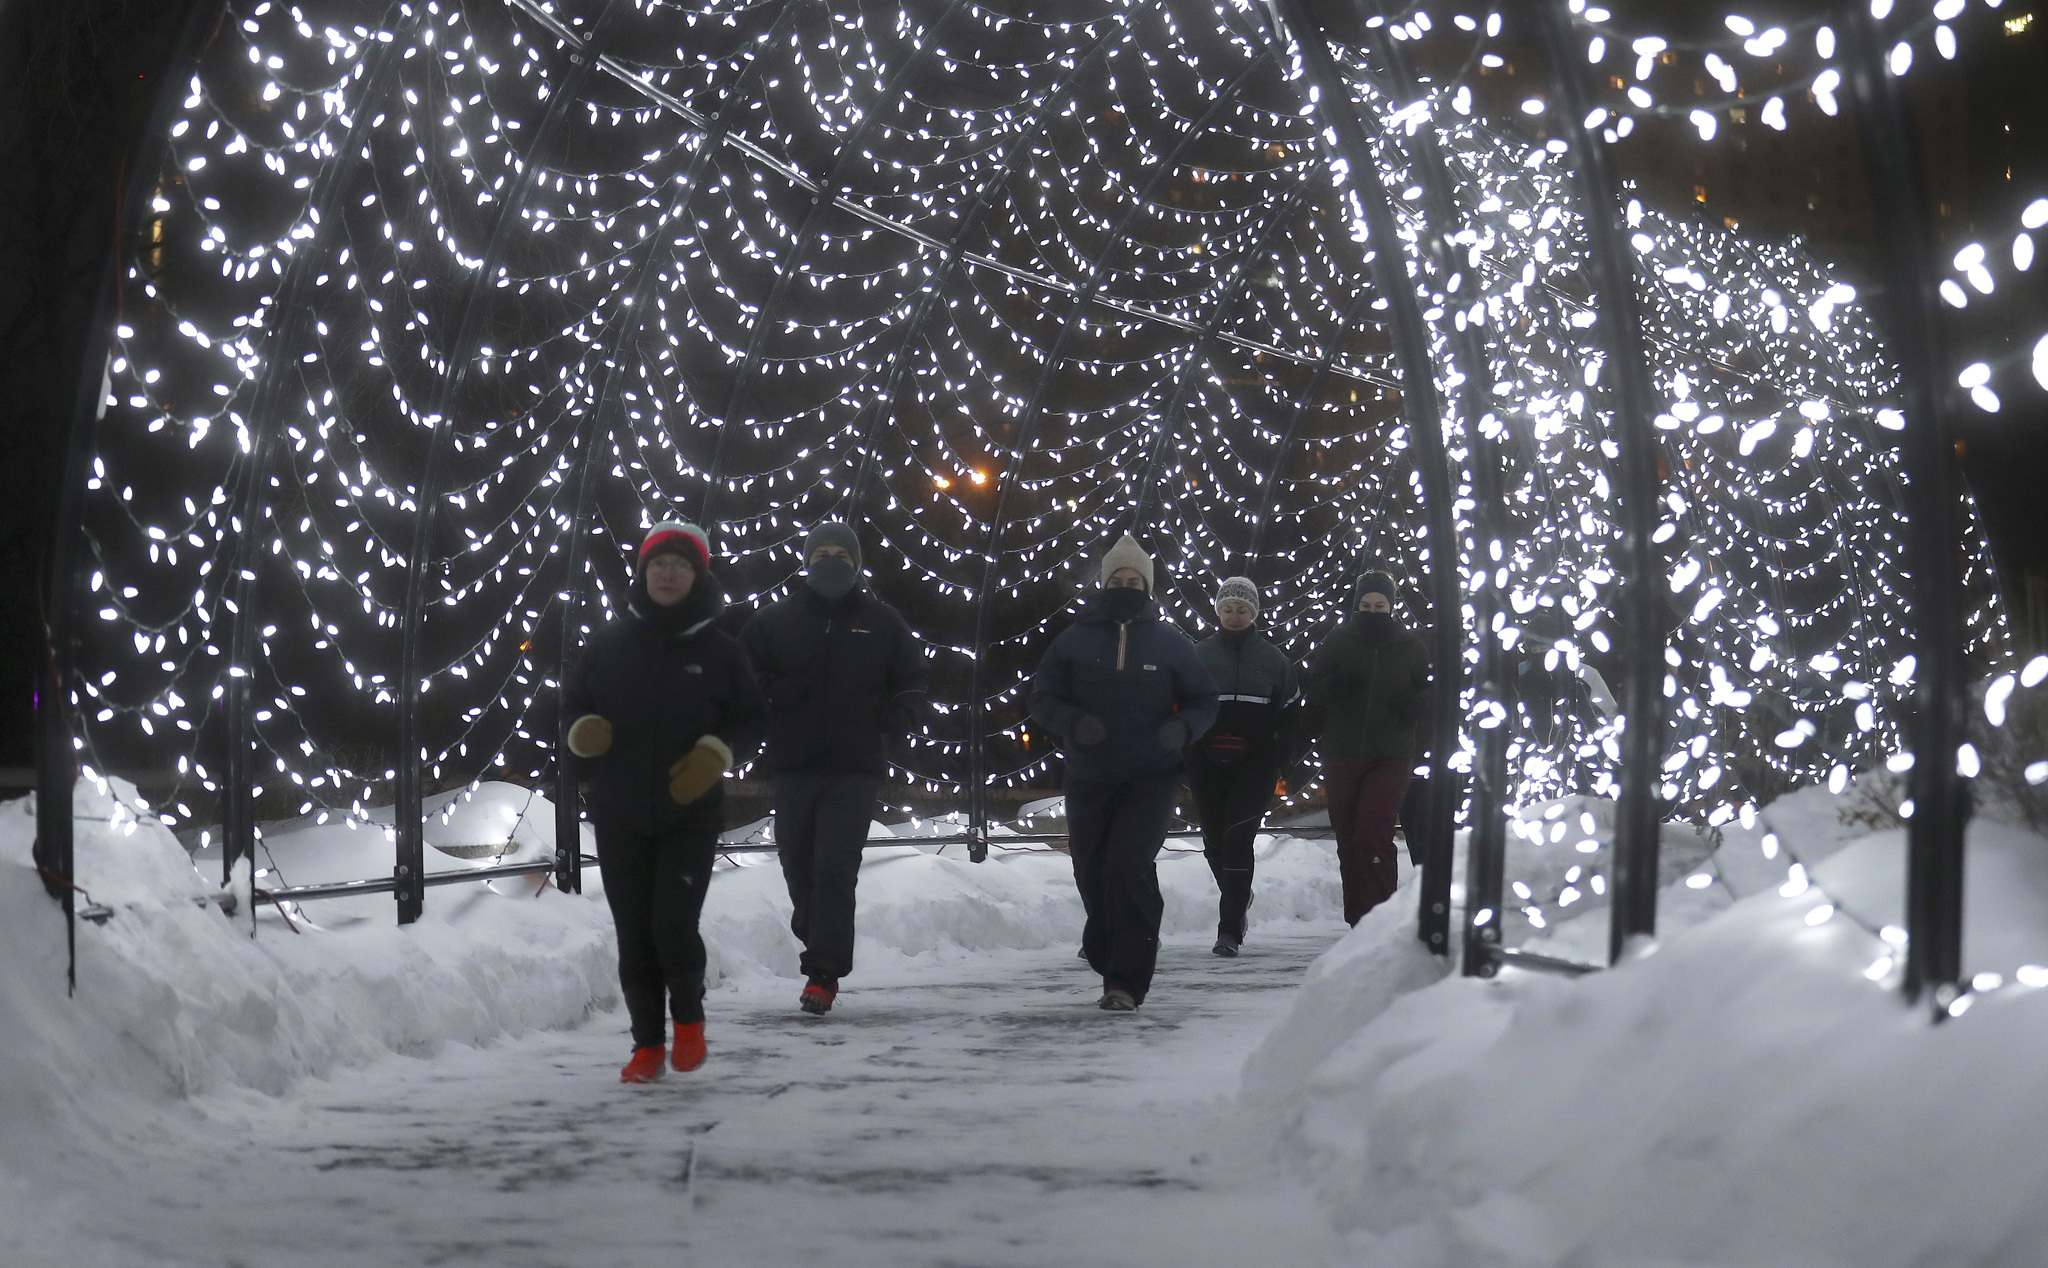 Somers has been co-ordinating spring, fall and winter sessions of the run club at The Forks for the past three years. (Trevor Hagan / Winnipeg Free Press)   TREVOR HAGAN / WINNIPEG FREE PReSS</p><p>Lindsay Somers, the new rec coordinator at The Forks, organizes a run club.</p></p>